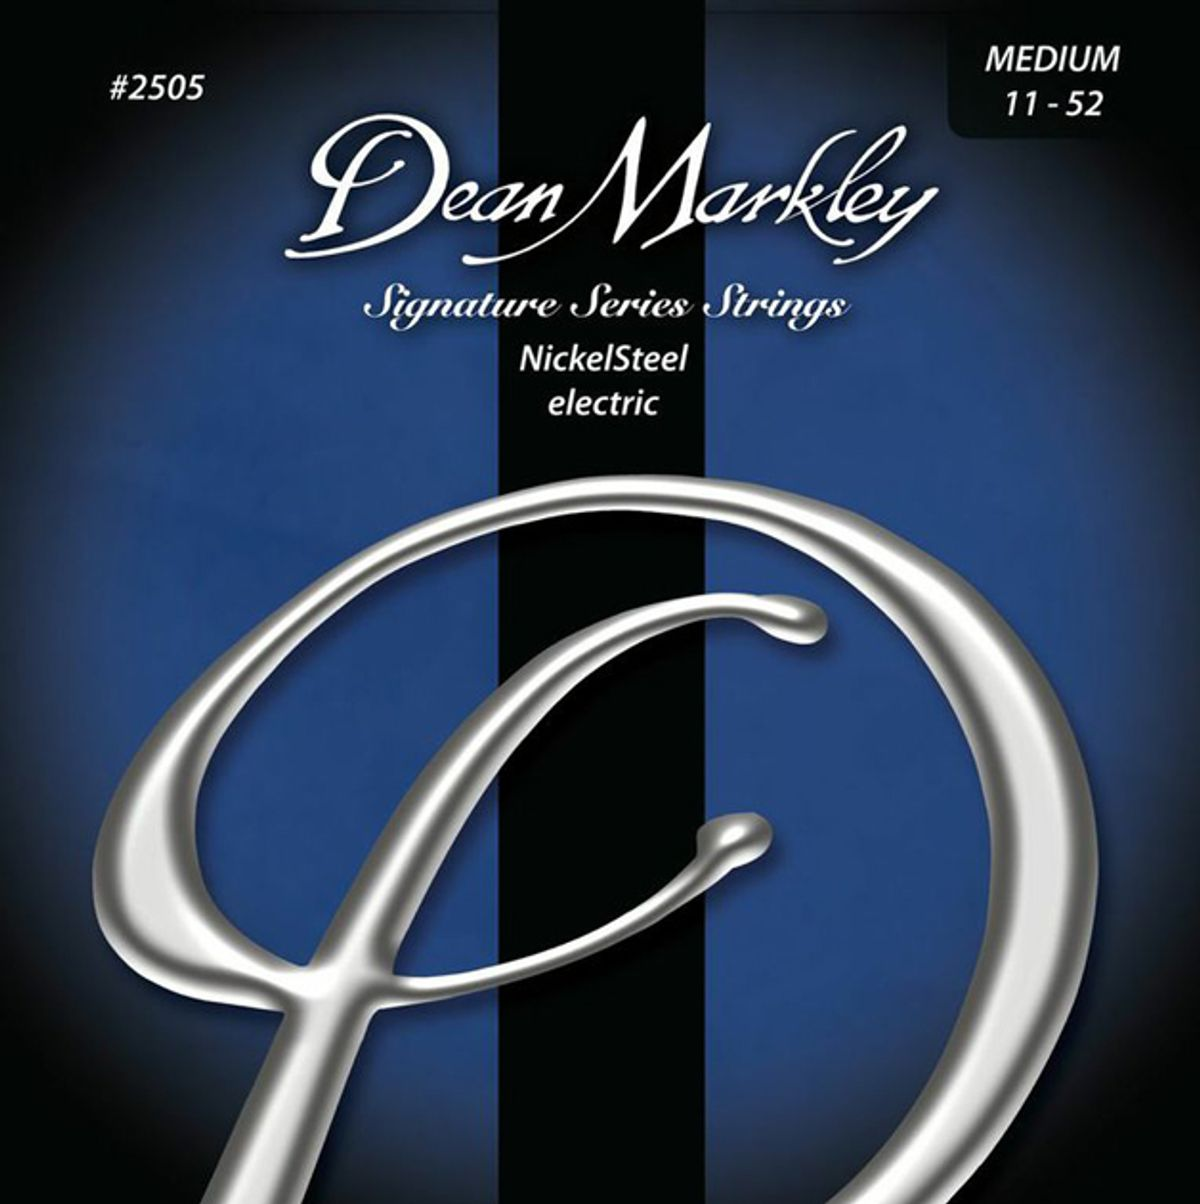 Dean Markley Releases New Signature Series Guitar Strings